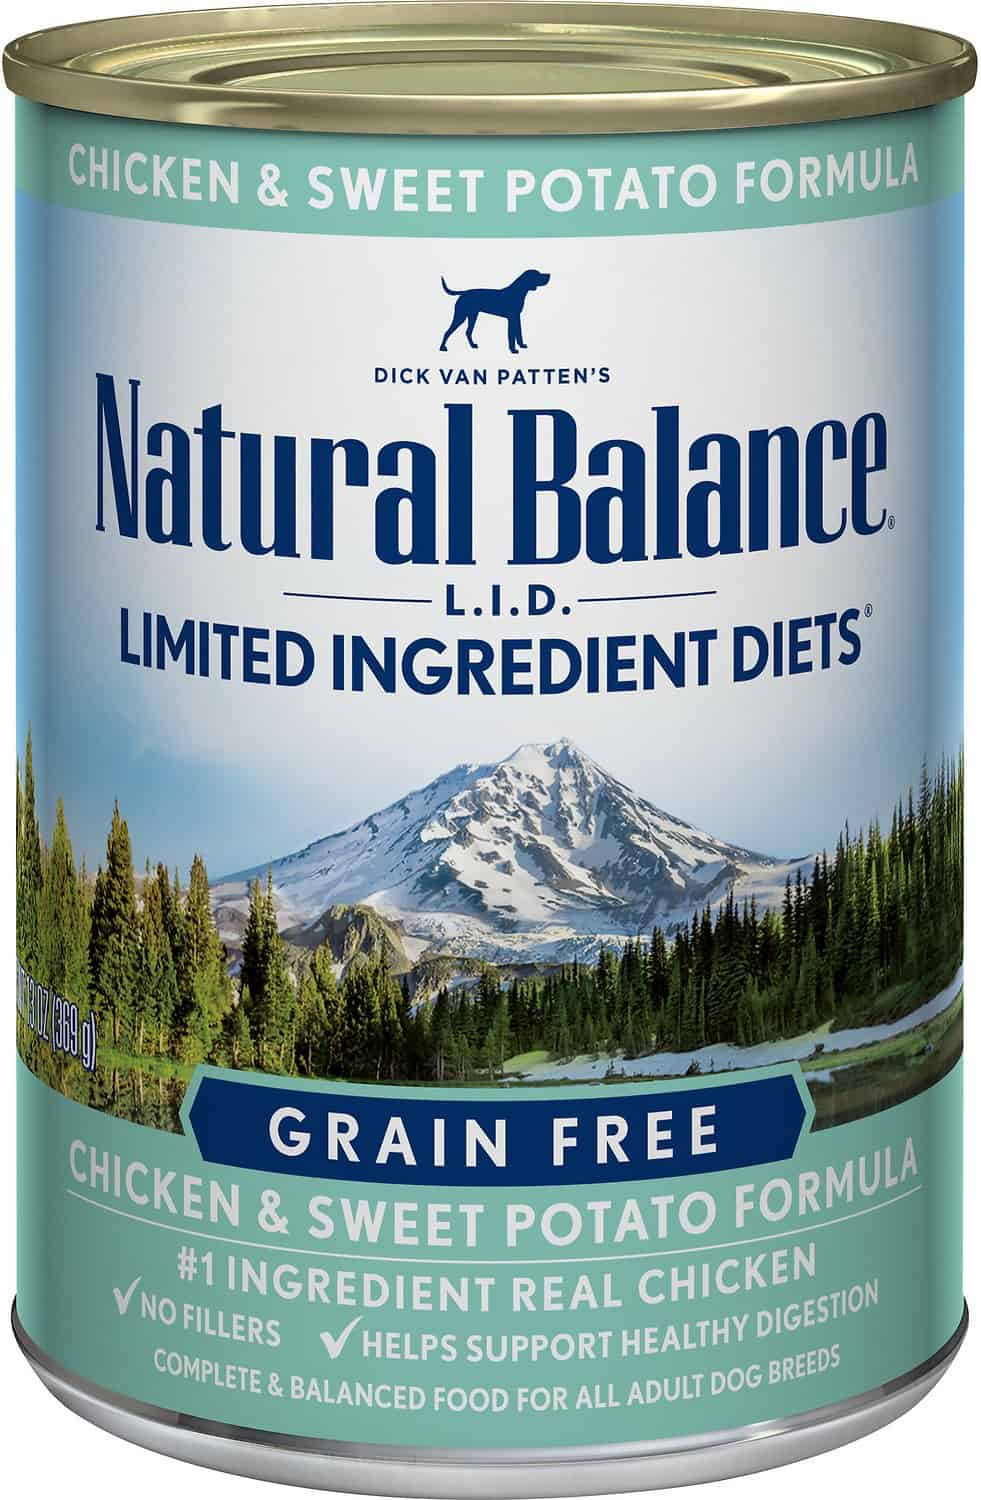 Natural Balance Dog Food Review 2021: Best High Quality Pet Food? 23